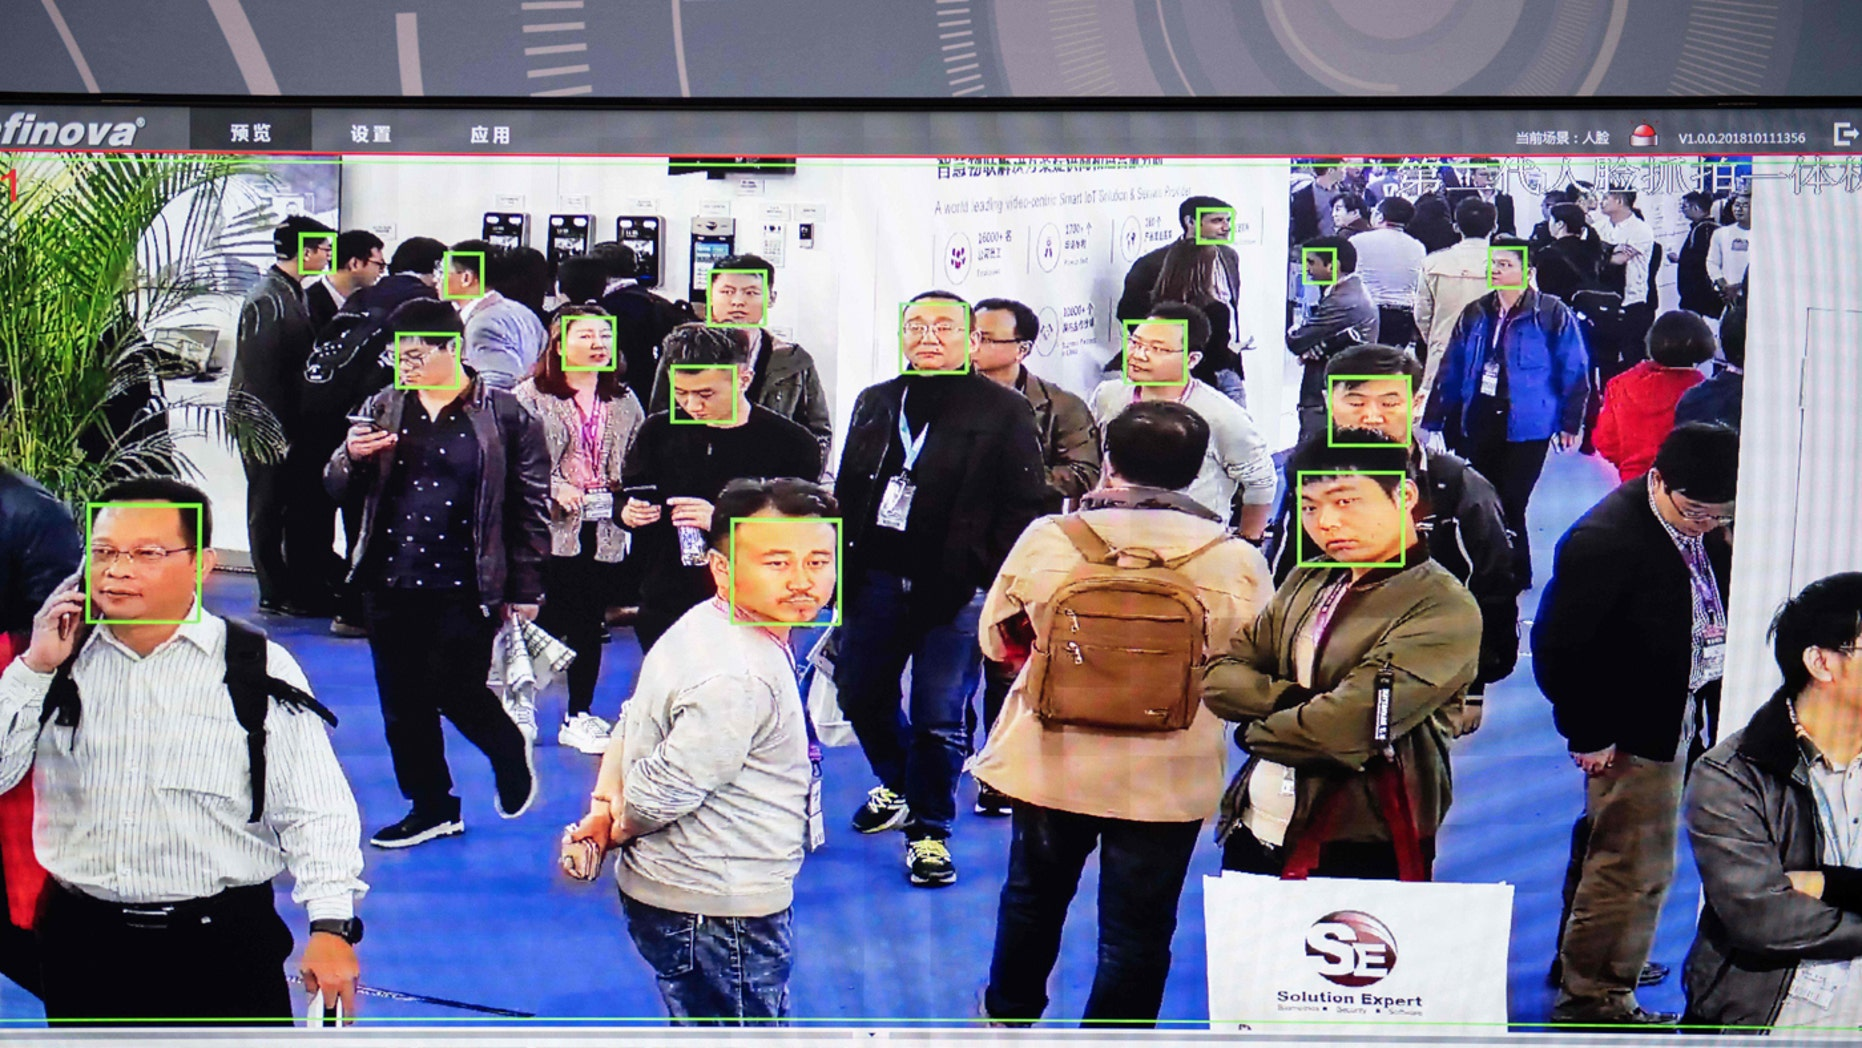 A screen shows visitors being filmed by AI (Artificial Intelligence) security cameras with facial recognition technology at the 14th China International Exhibition on Public Safety and Security at the China International Exhibition Center in Beijing on October 24, 2018.